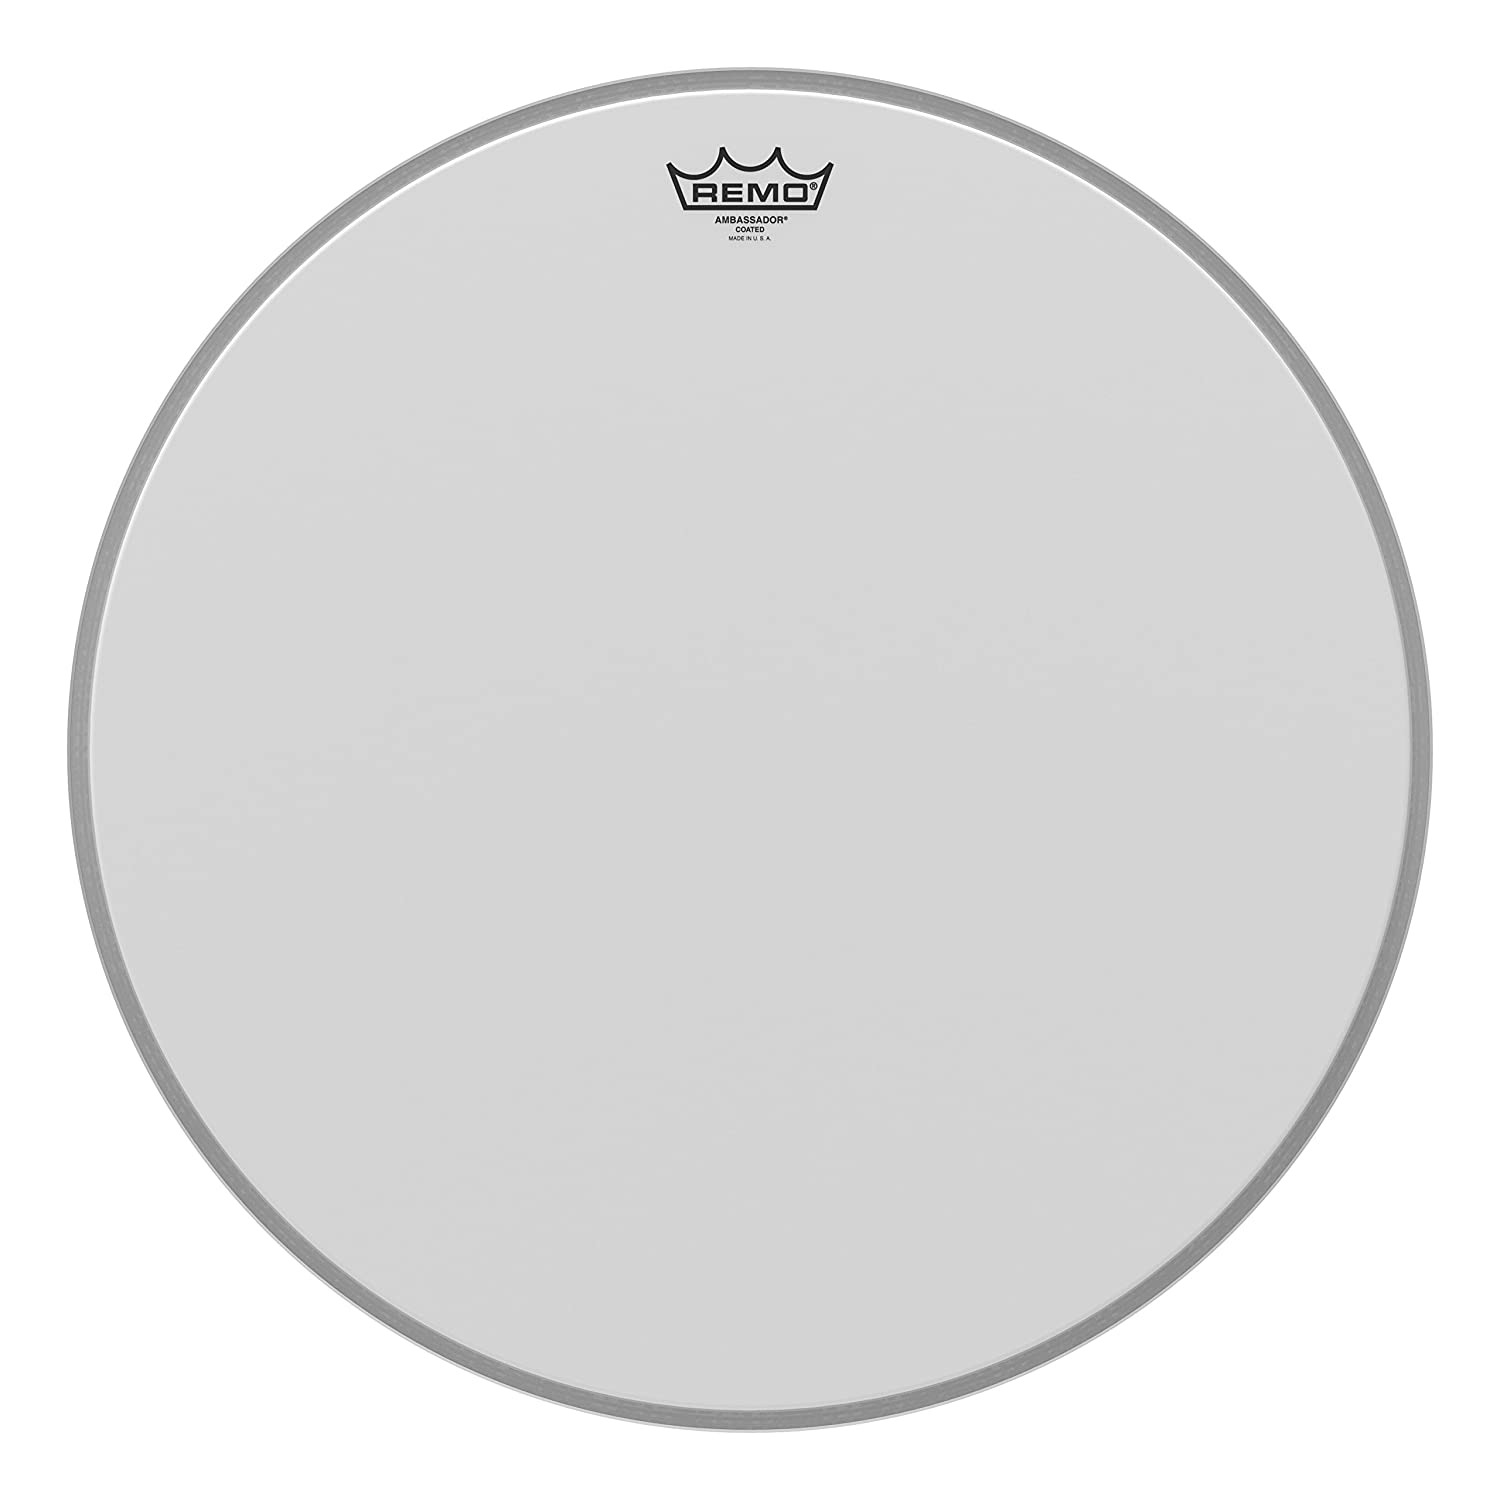 Remo Ambassador Coated Bass Drum Head - 20 Inch 718sEqurFzL